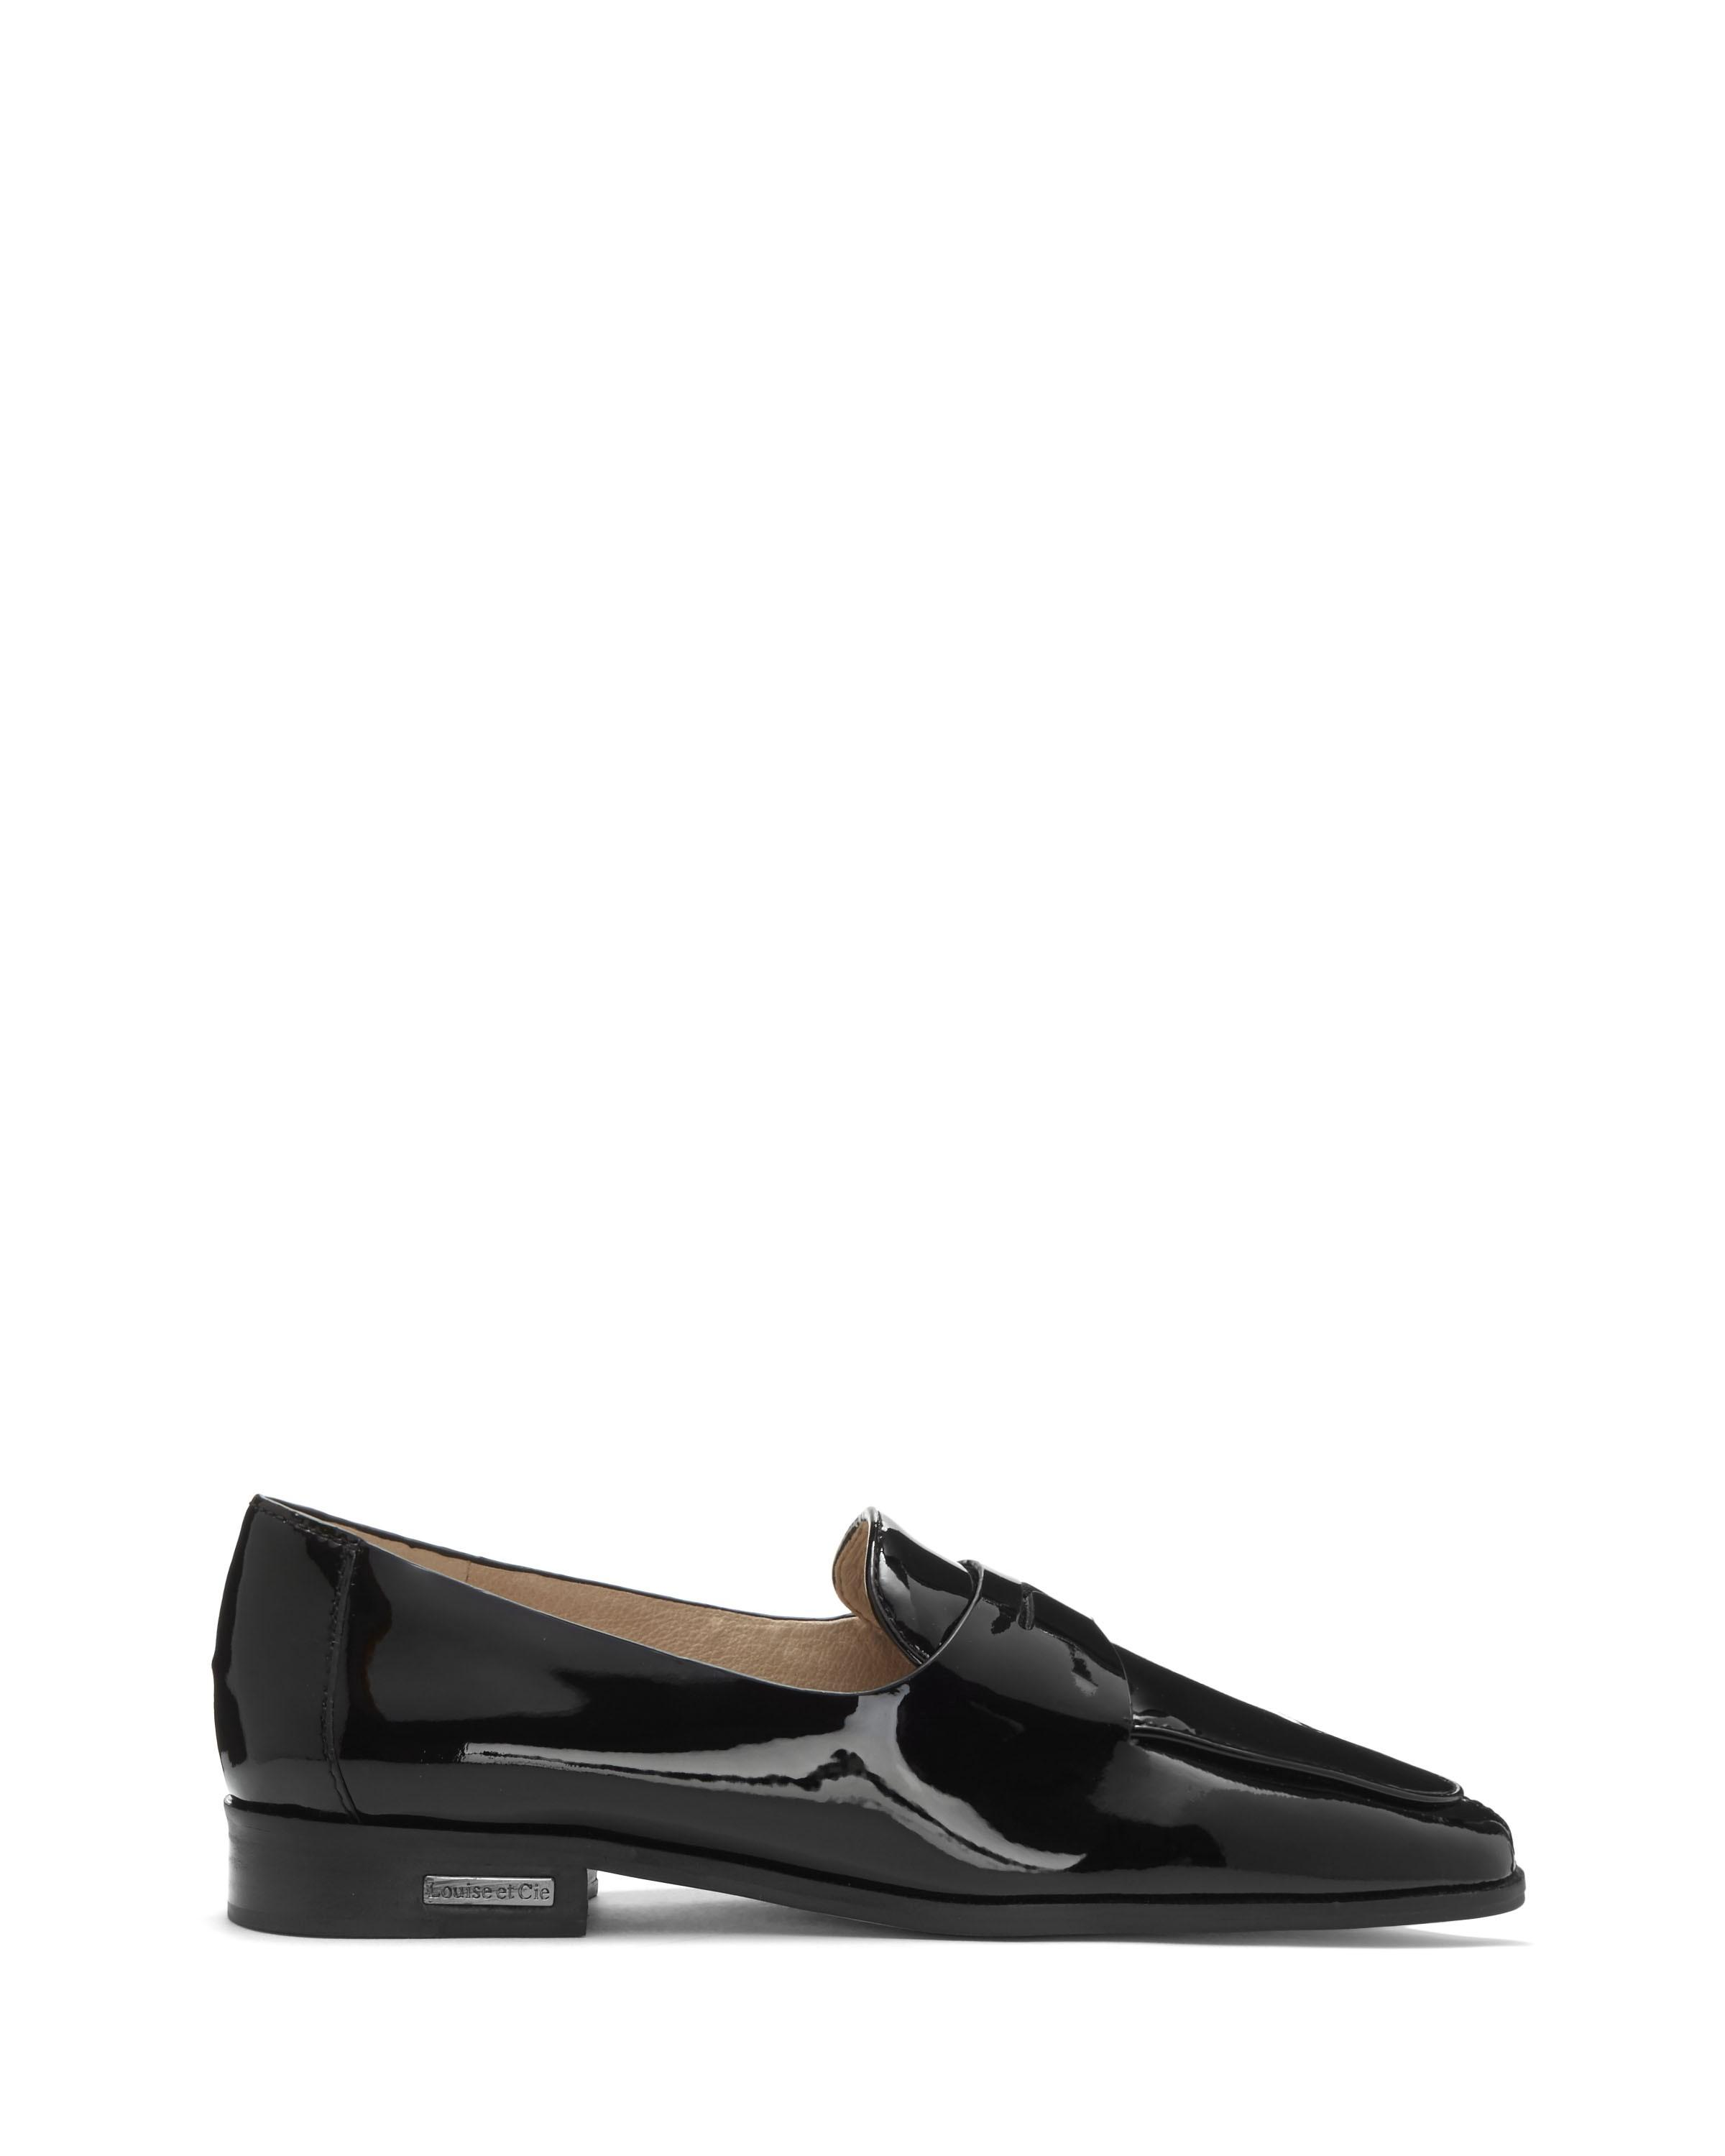 dc8f3992a74 Vince Camuto Louise Et Cie Zanie – Penny Loafer In Black Soft Cow Patent